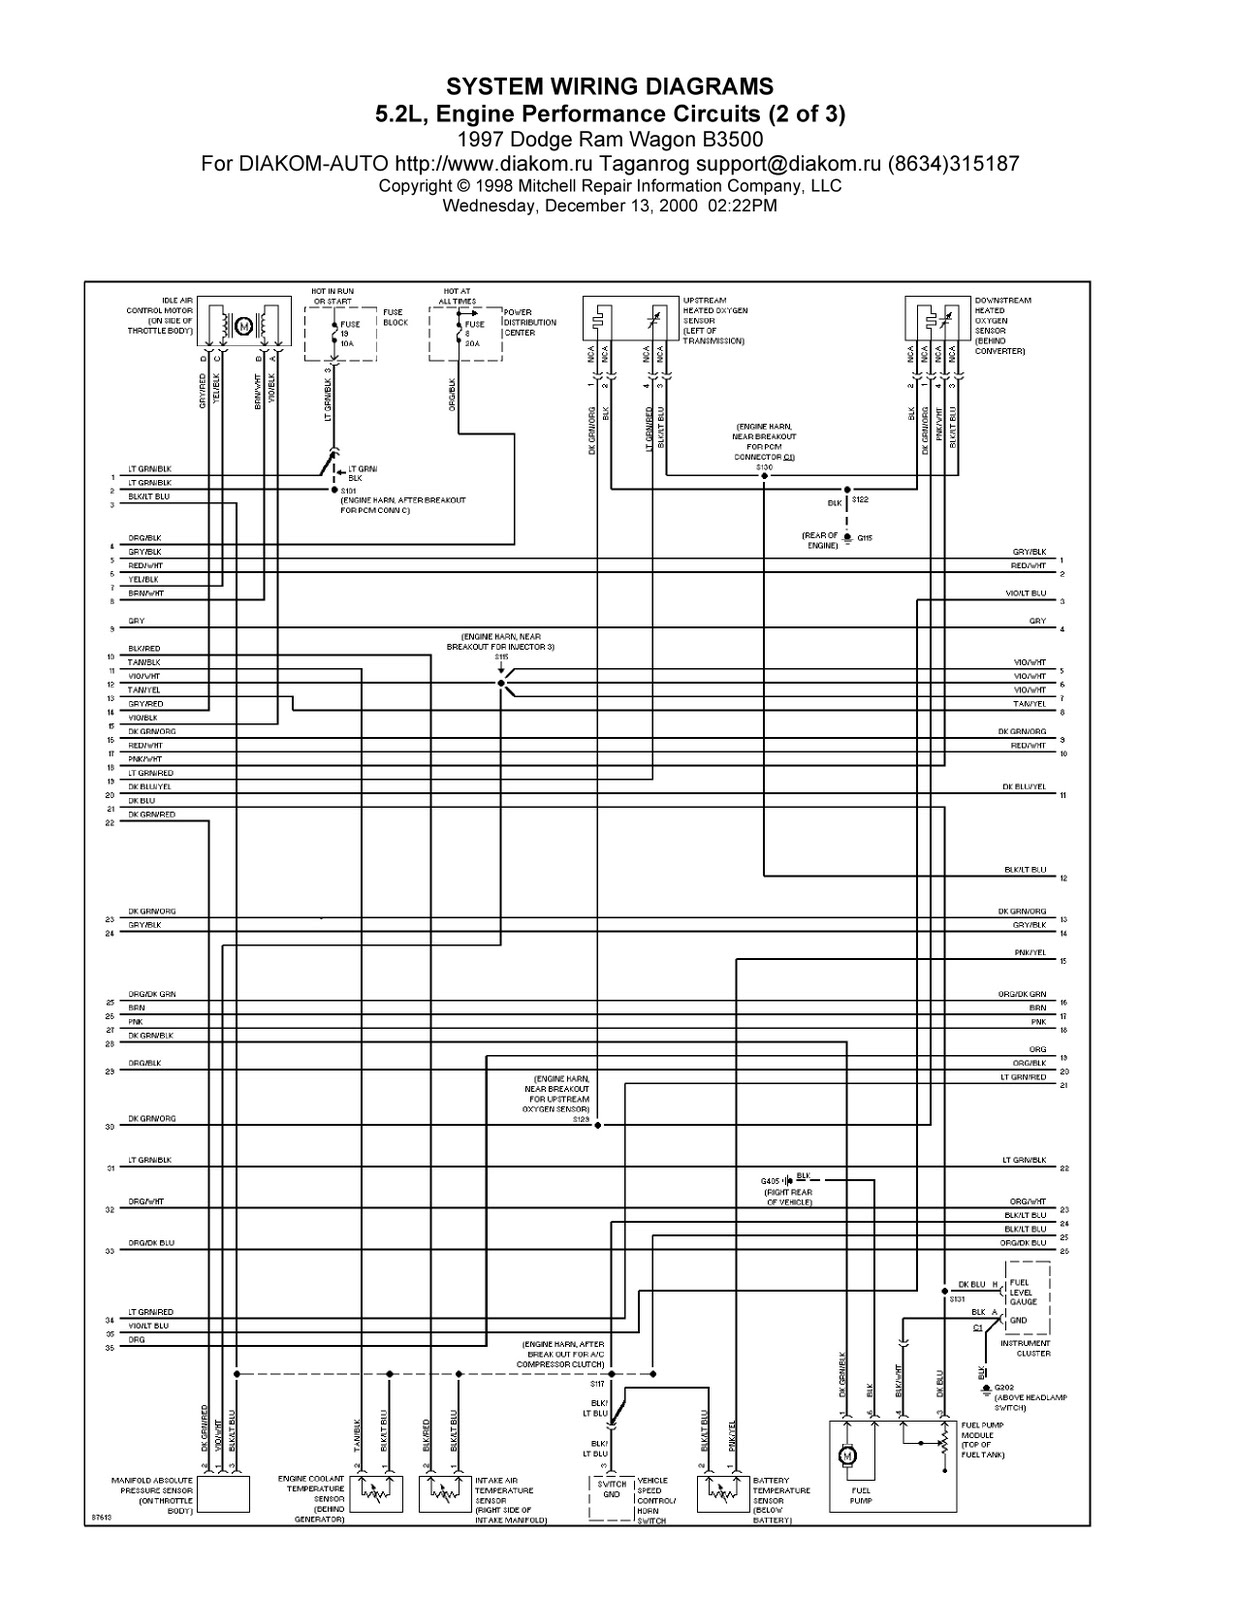 small resolution of 1997 dodge ram wagon b3500 system wiring diagram 5 2l 1997 dodge ram wiring diagram 97